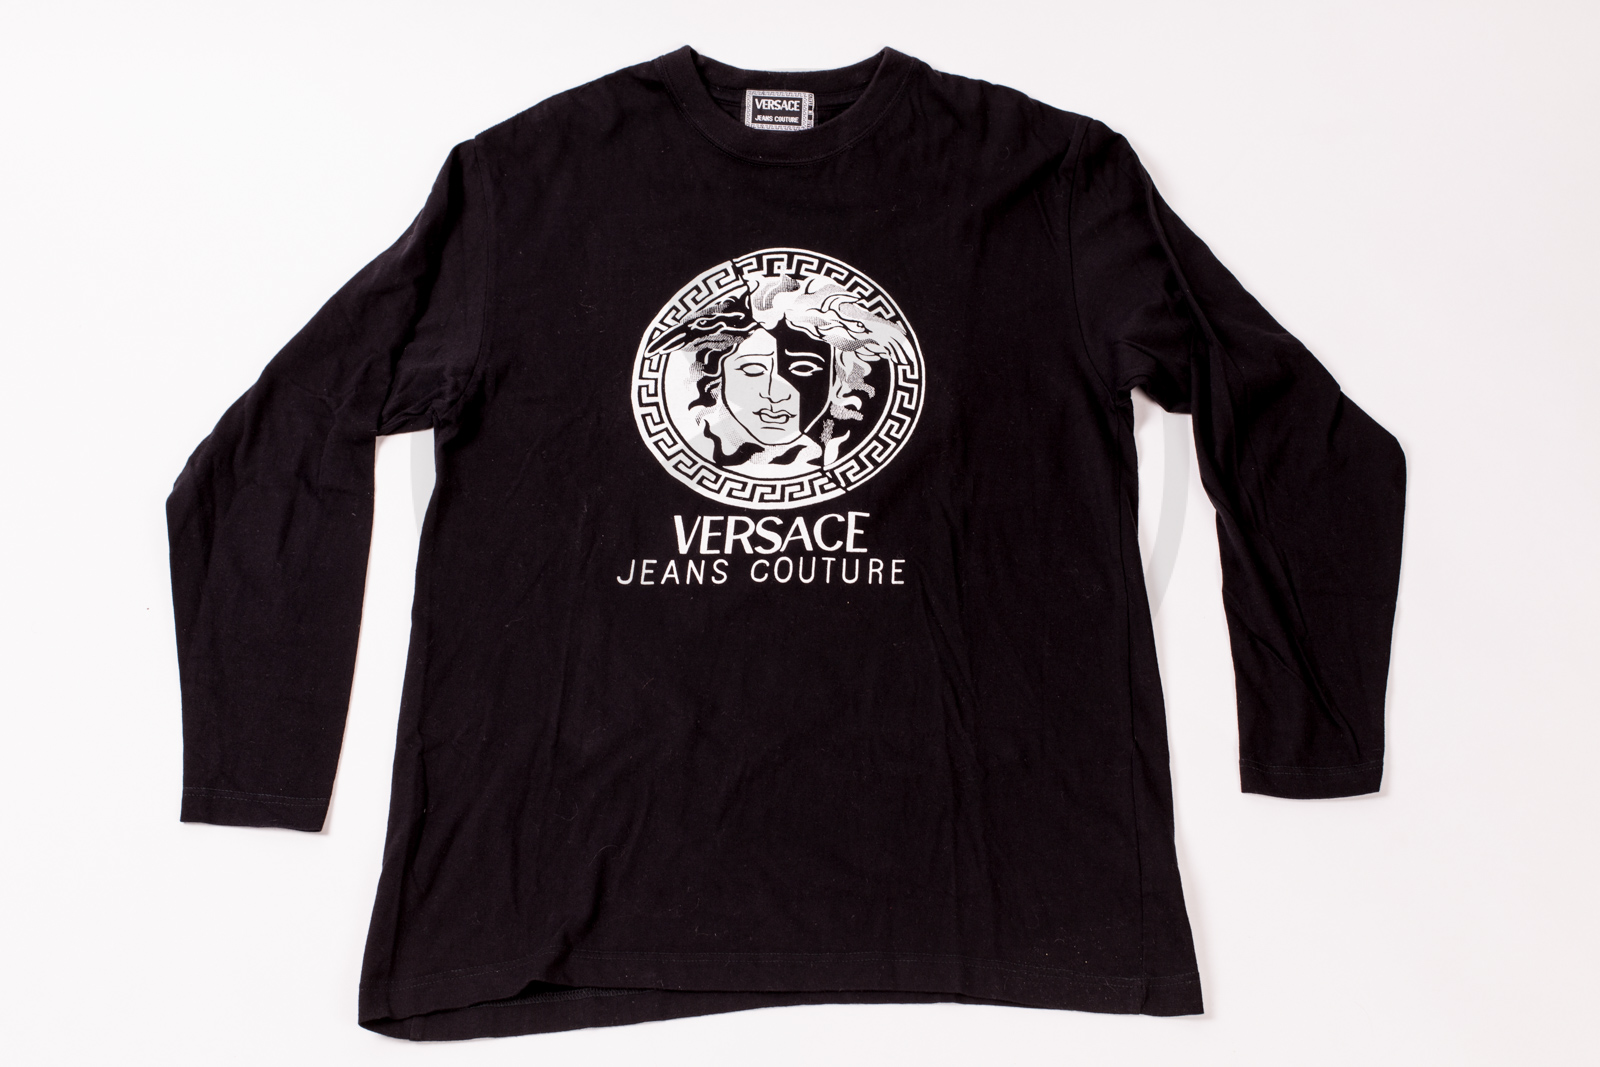 620ad7110c00 Versace Jeans Couture long sleeve shirt – Sammy   Nino s Store